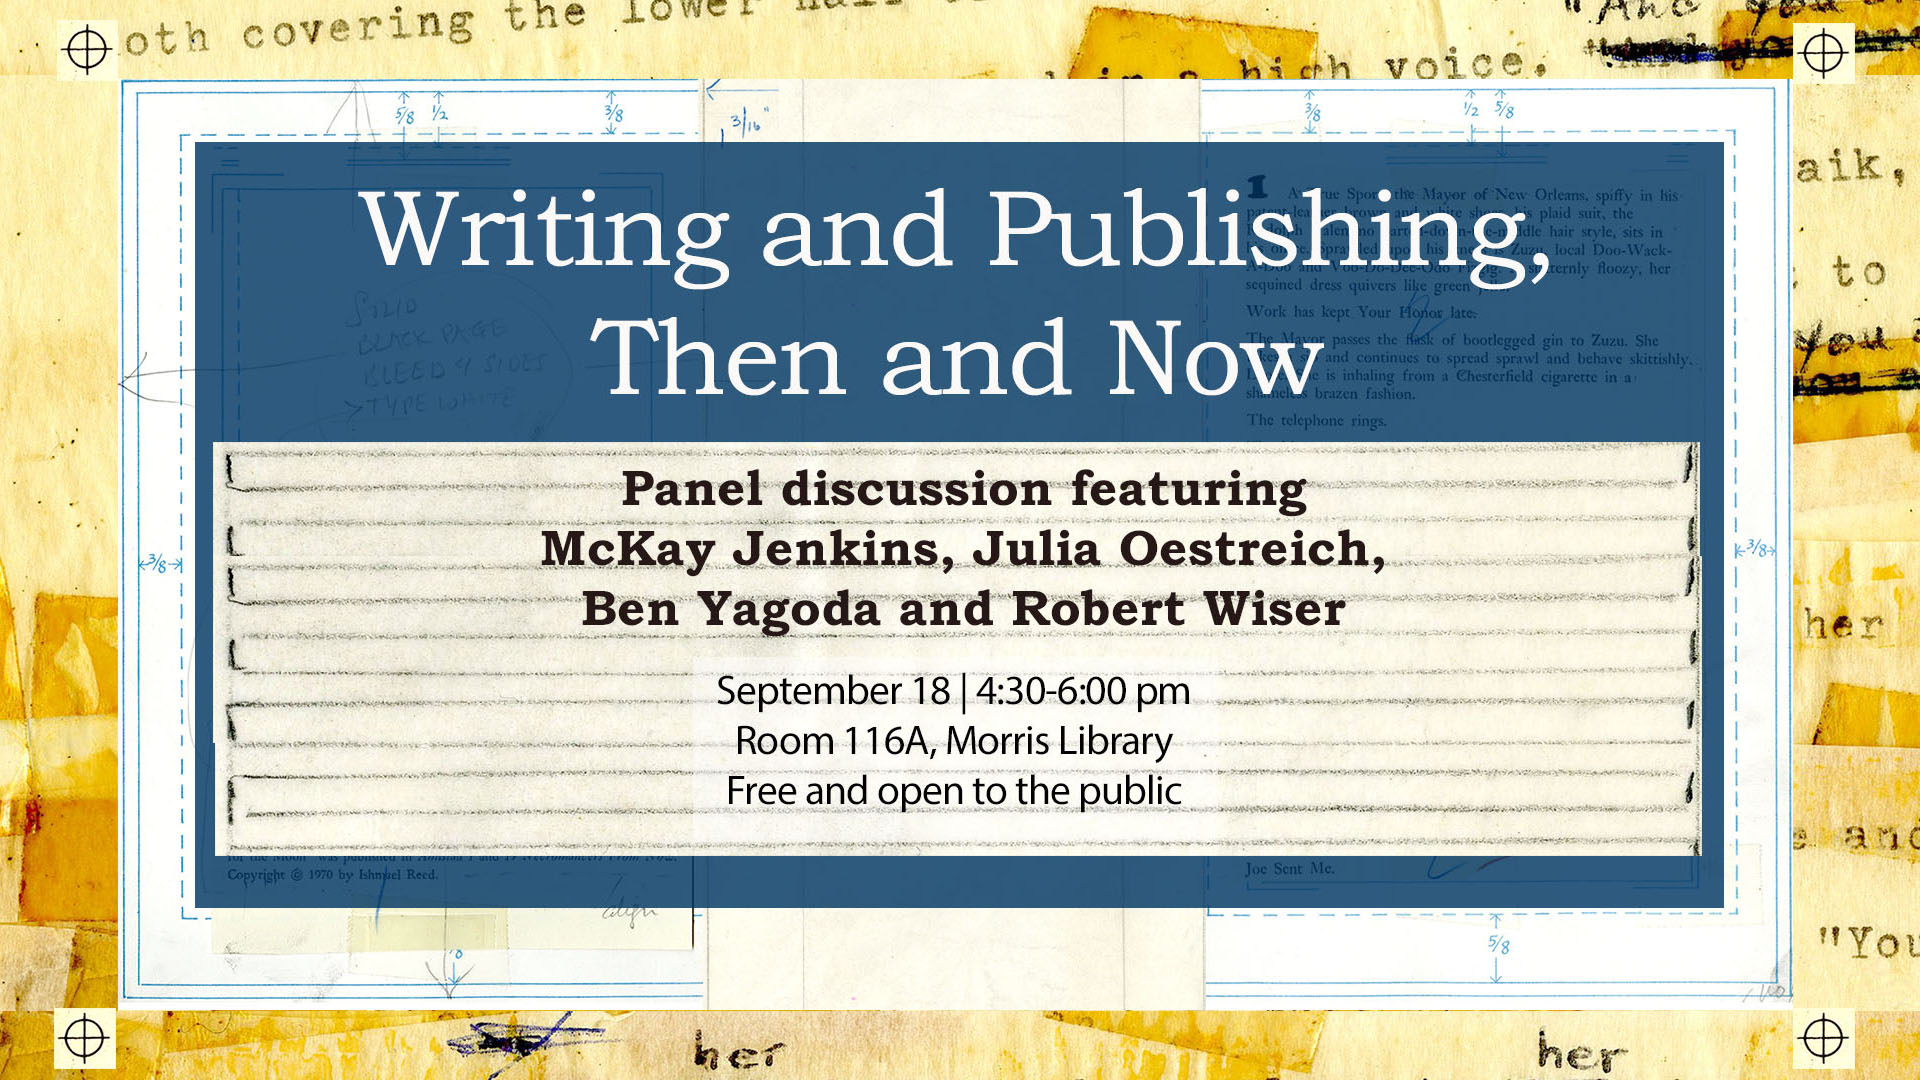 Promotional image for Writing and Publishing, Then and Now